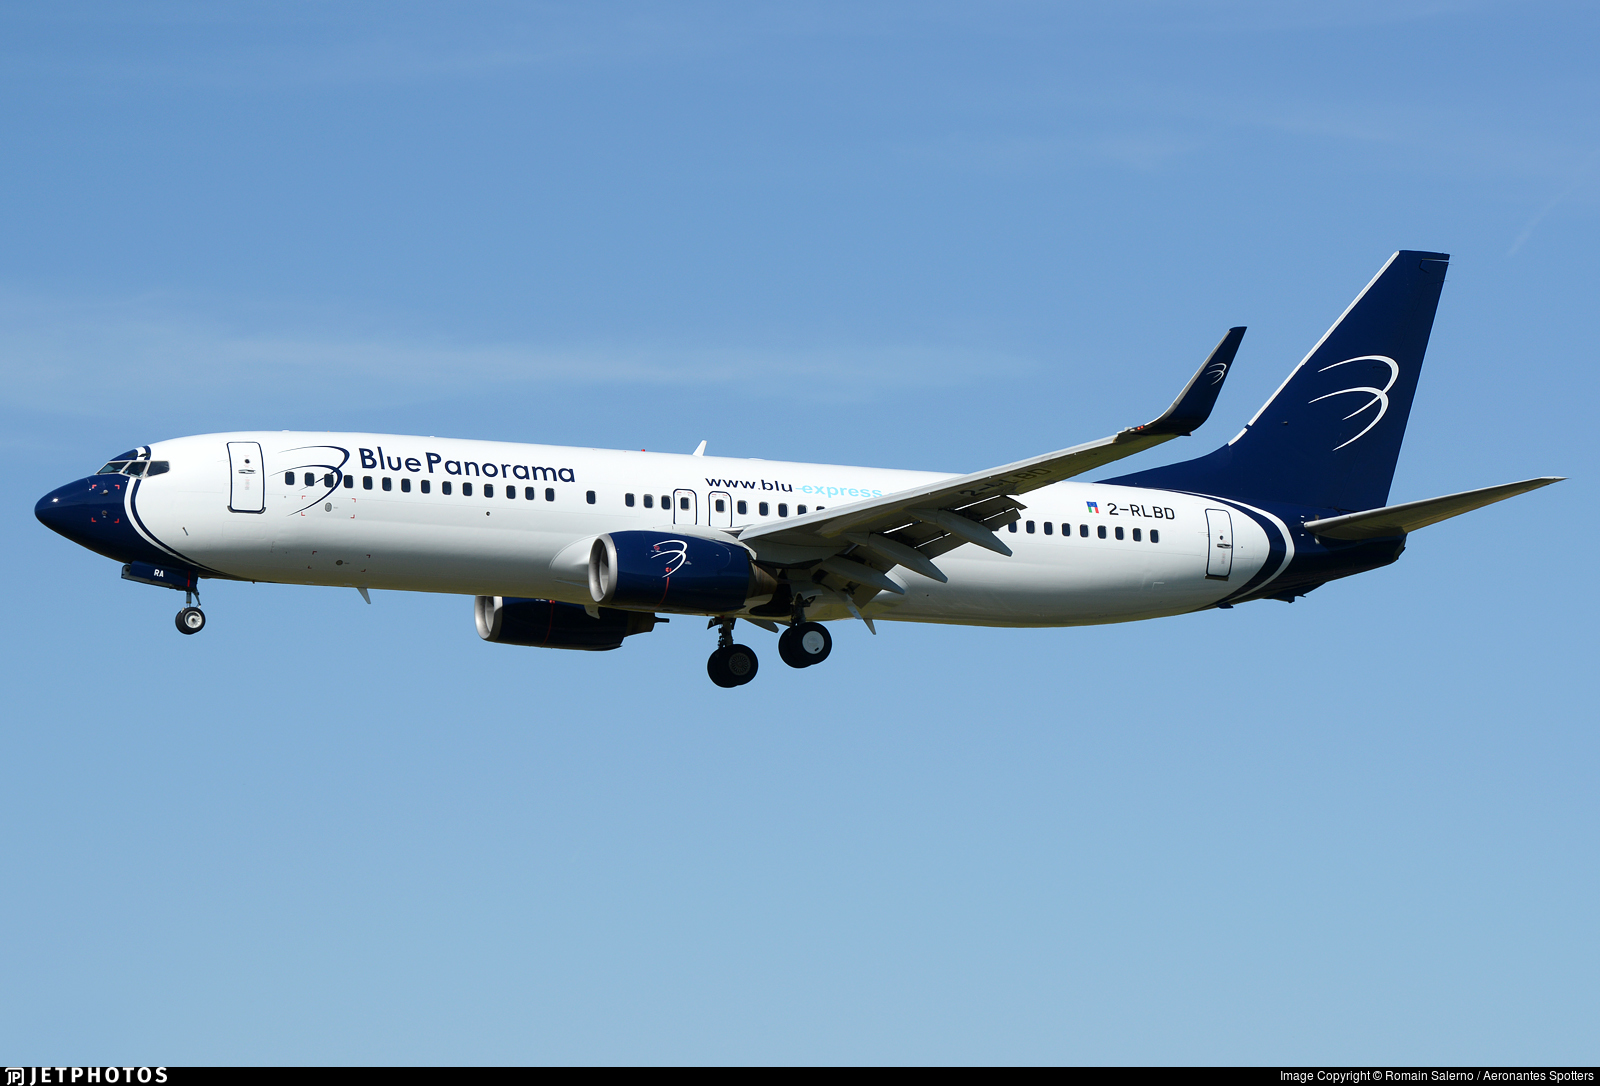 2-RLBD - Boeing 737-85F - Blue Panorama Airlines